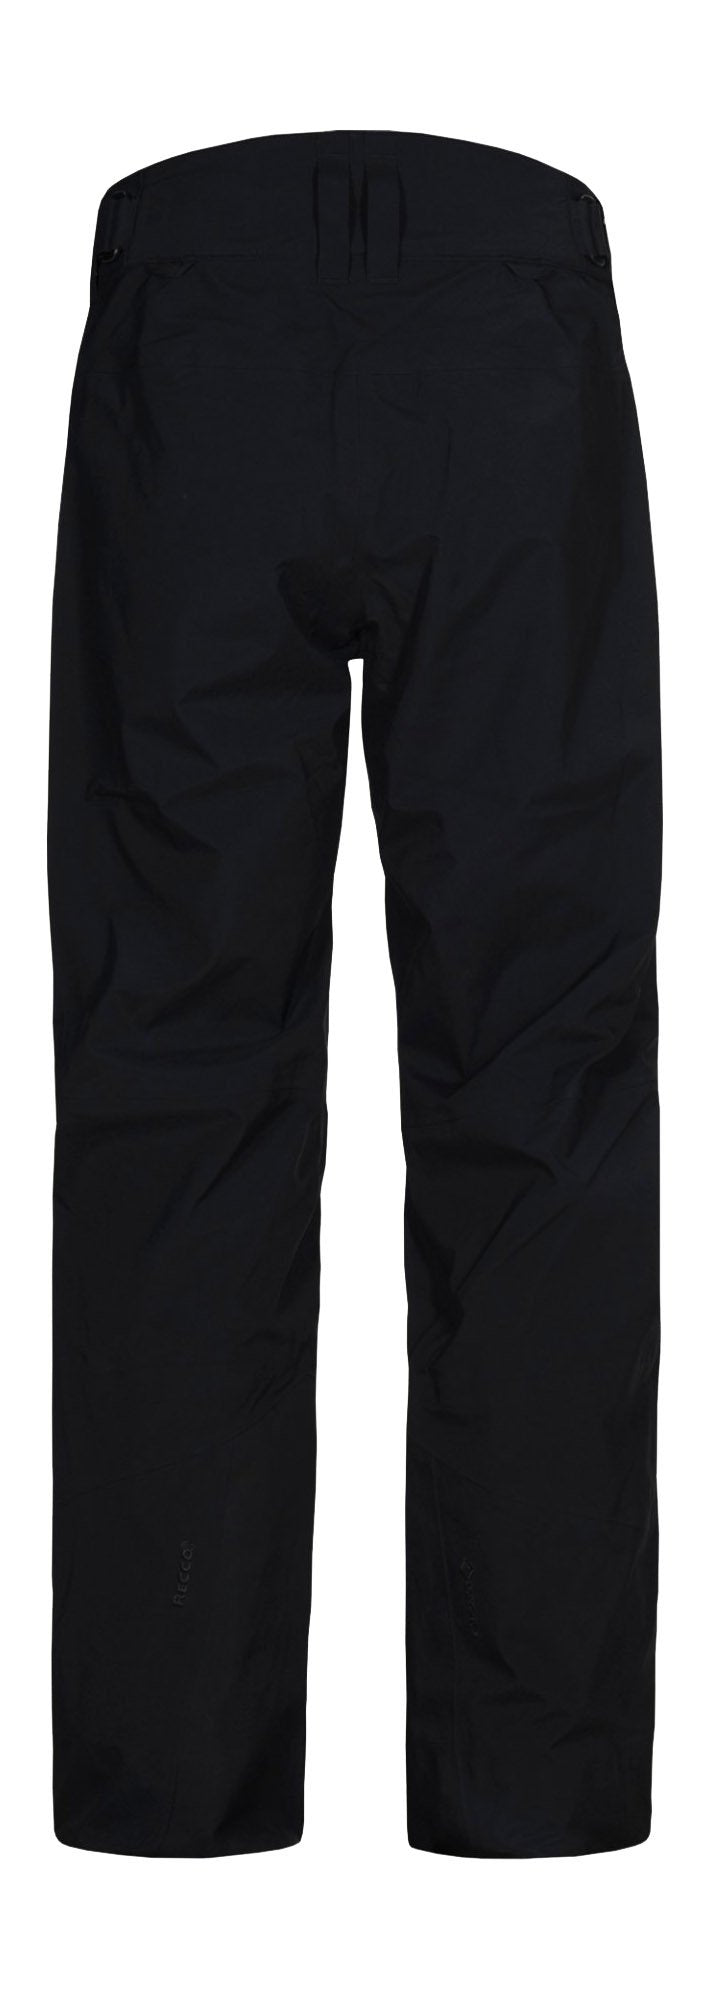 Peak Performance Gravity Ski Pants